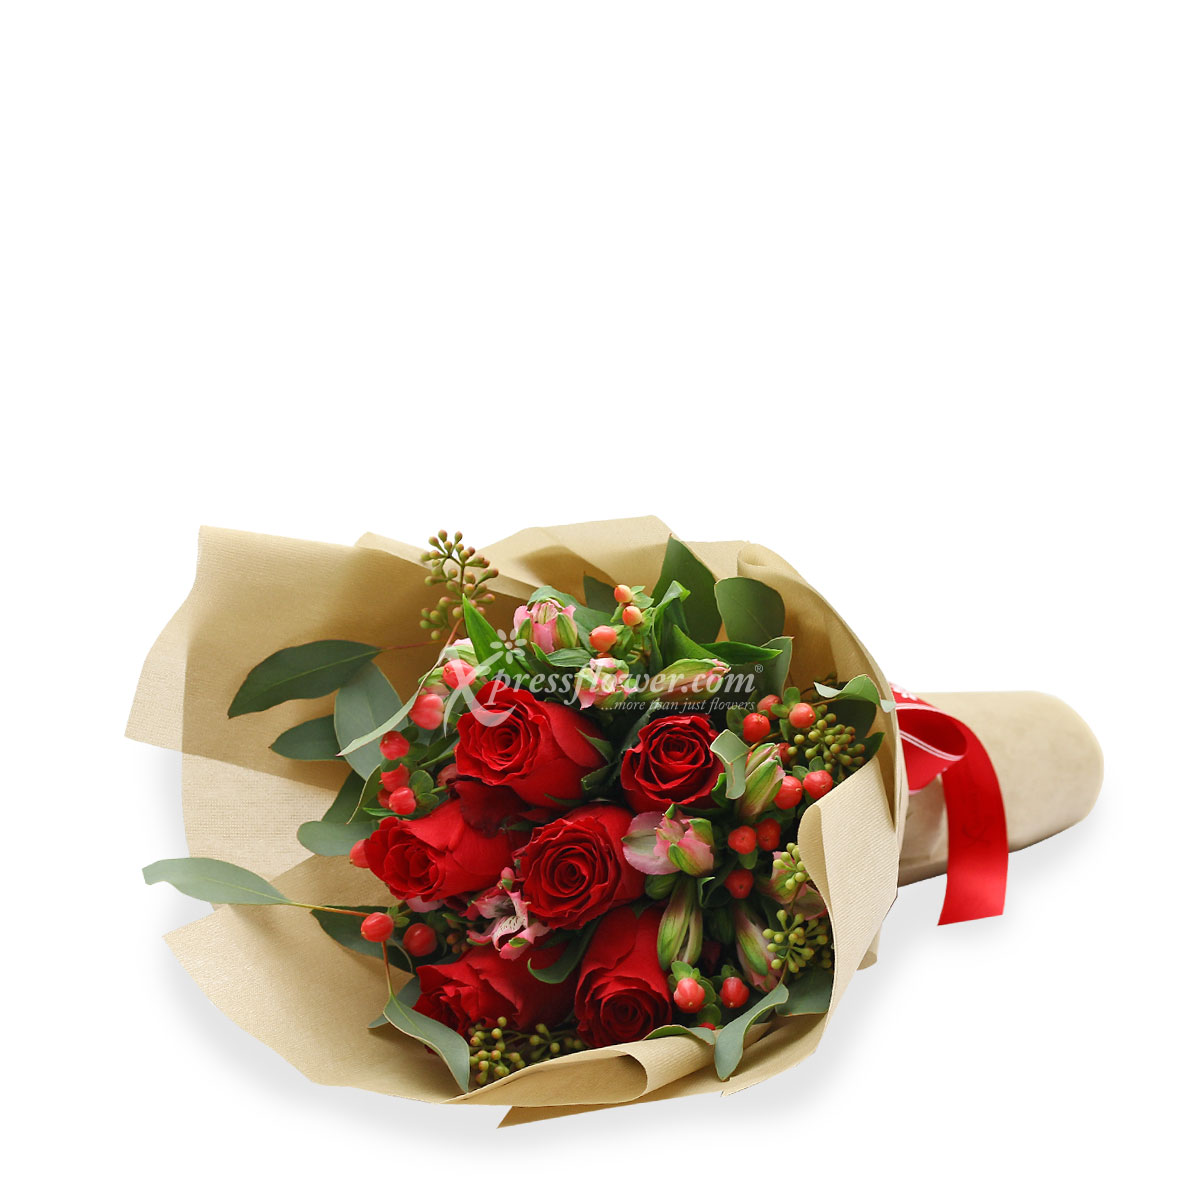 VD1702 6 stalks red roses bouquet